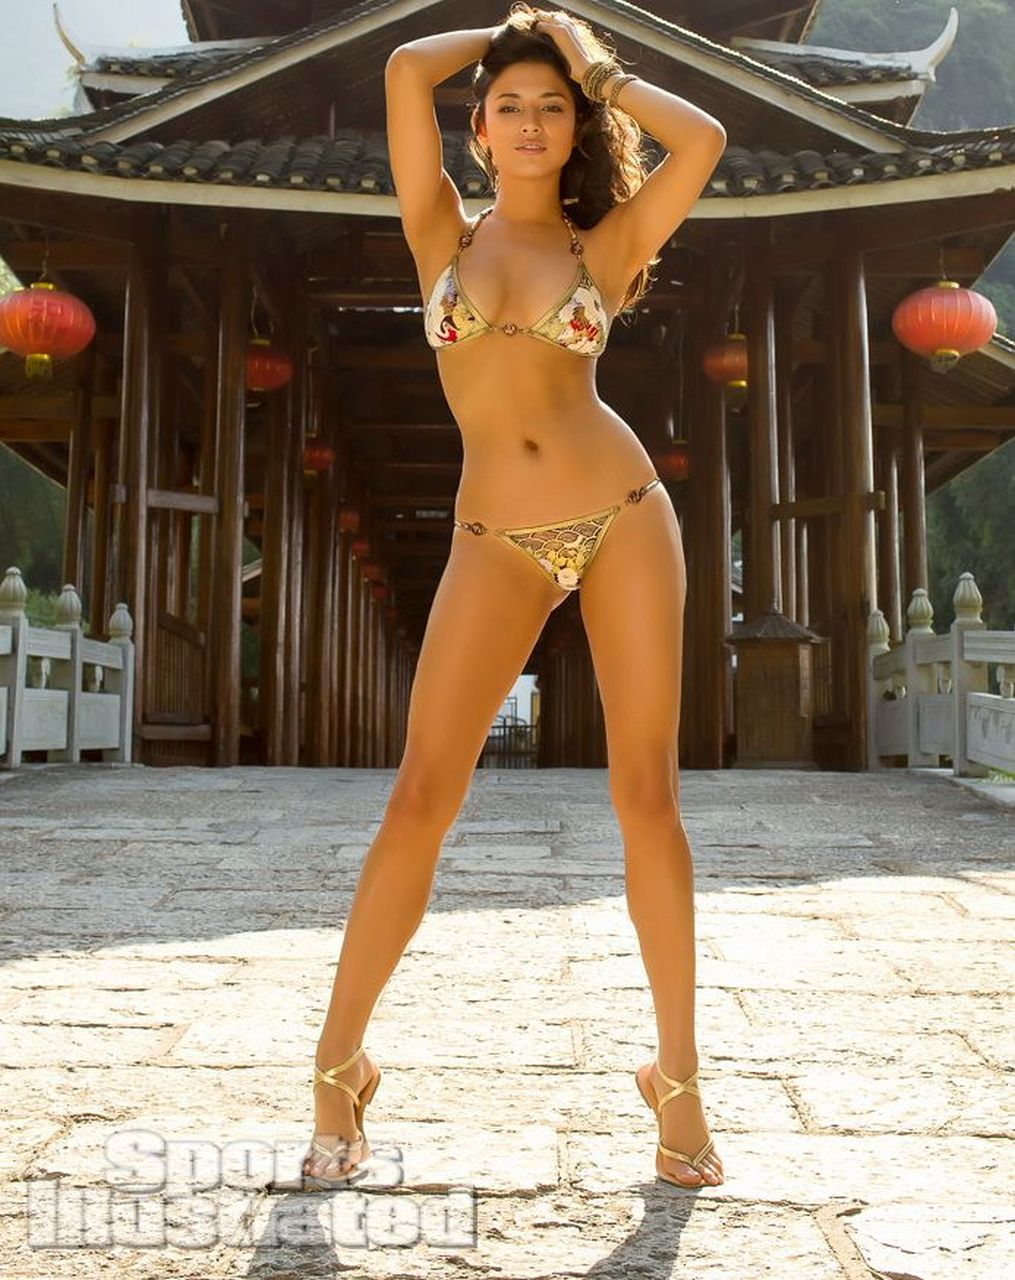 Pin robin meade high quality image size 453x680 of photos - Robin meade swimsuit ...